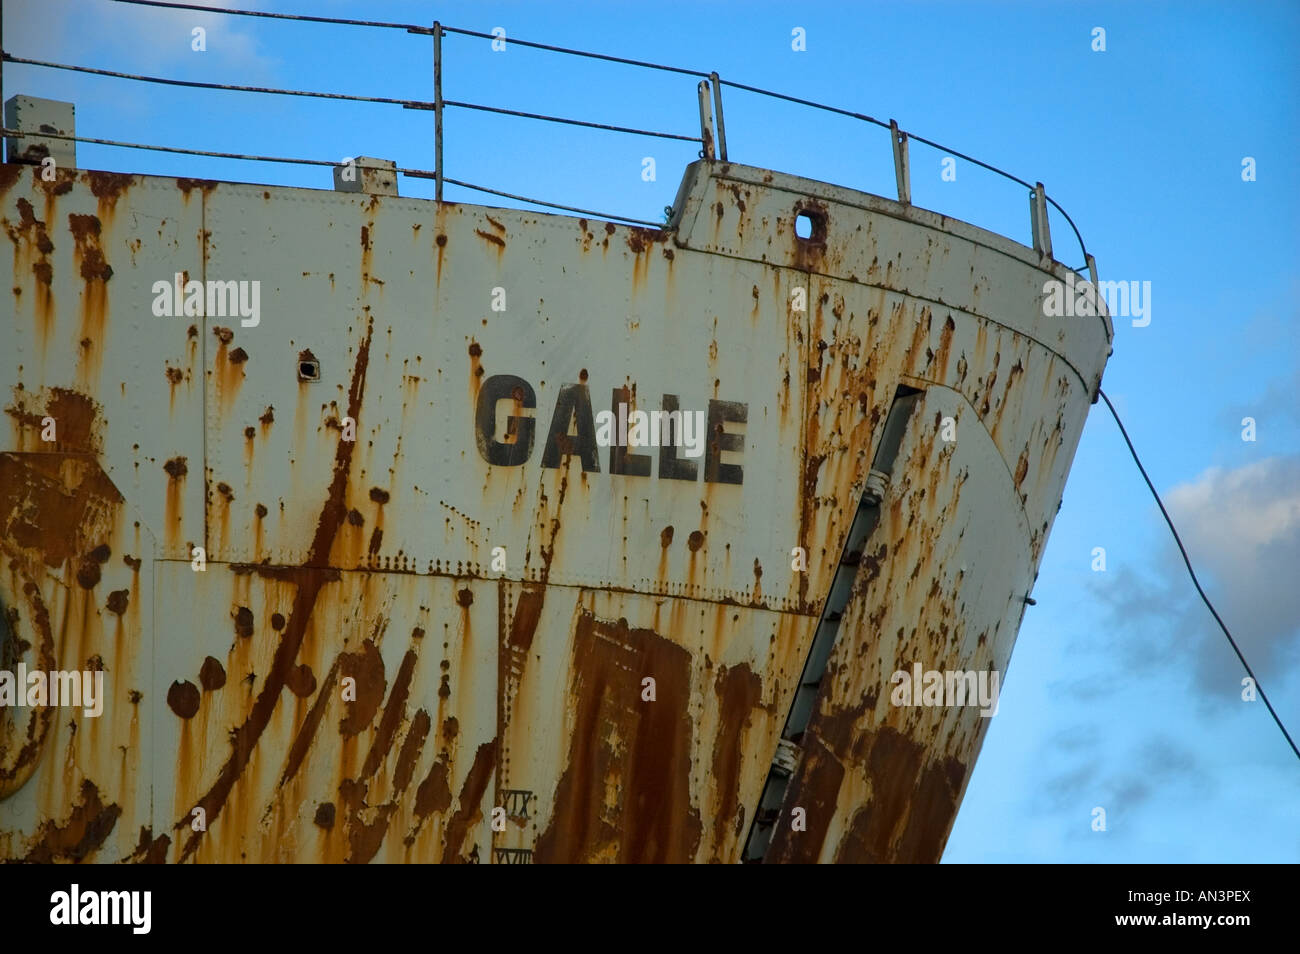 Wreck RFA Galle Portsmouth Harbour Hampshire England UK Stock Photo